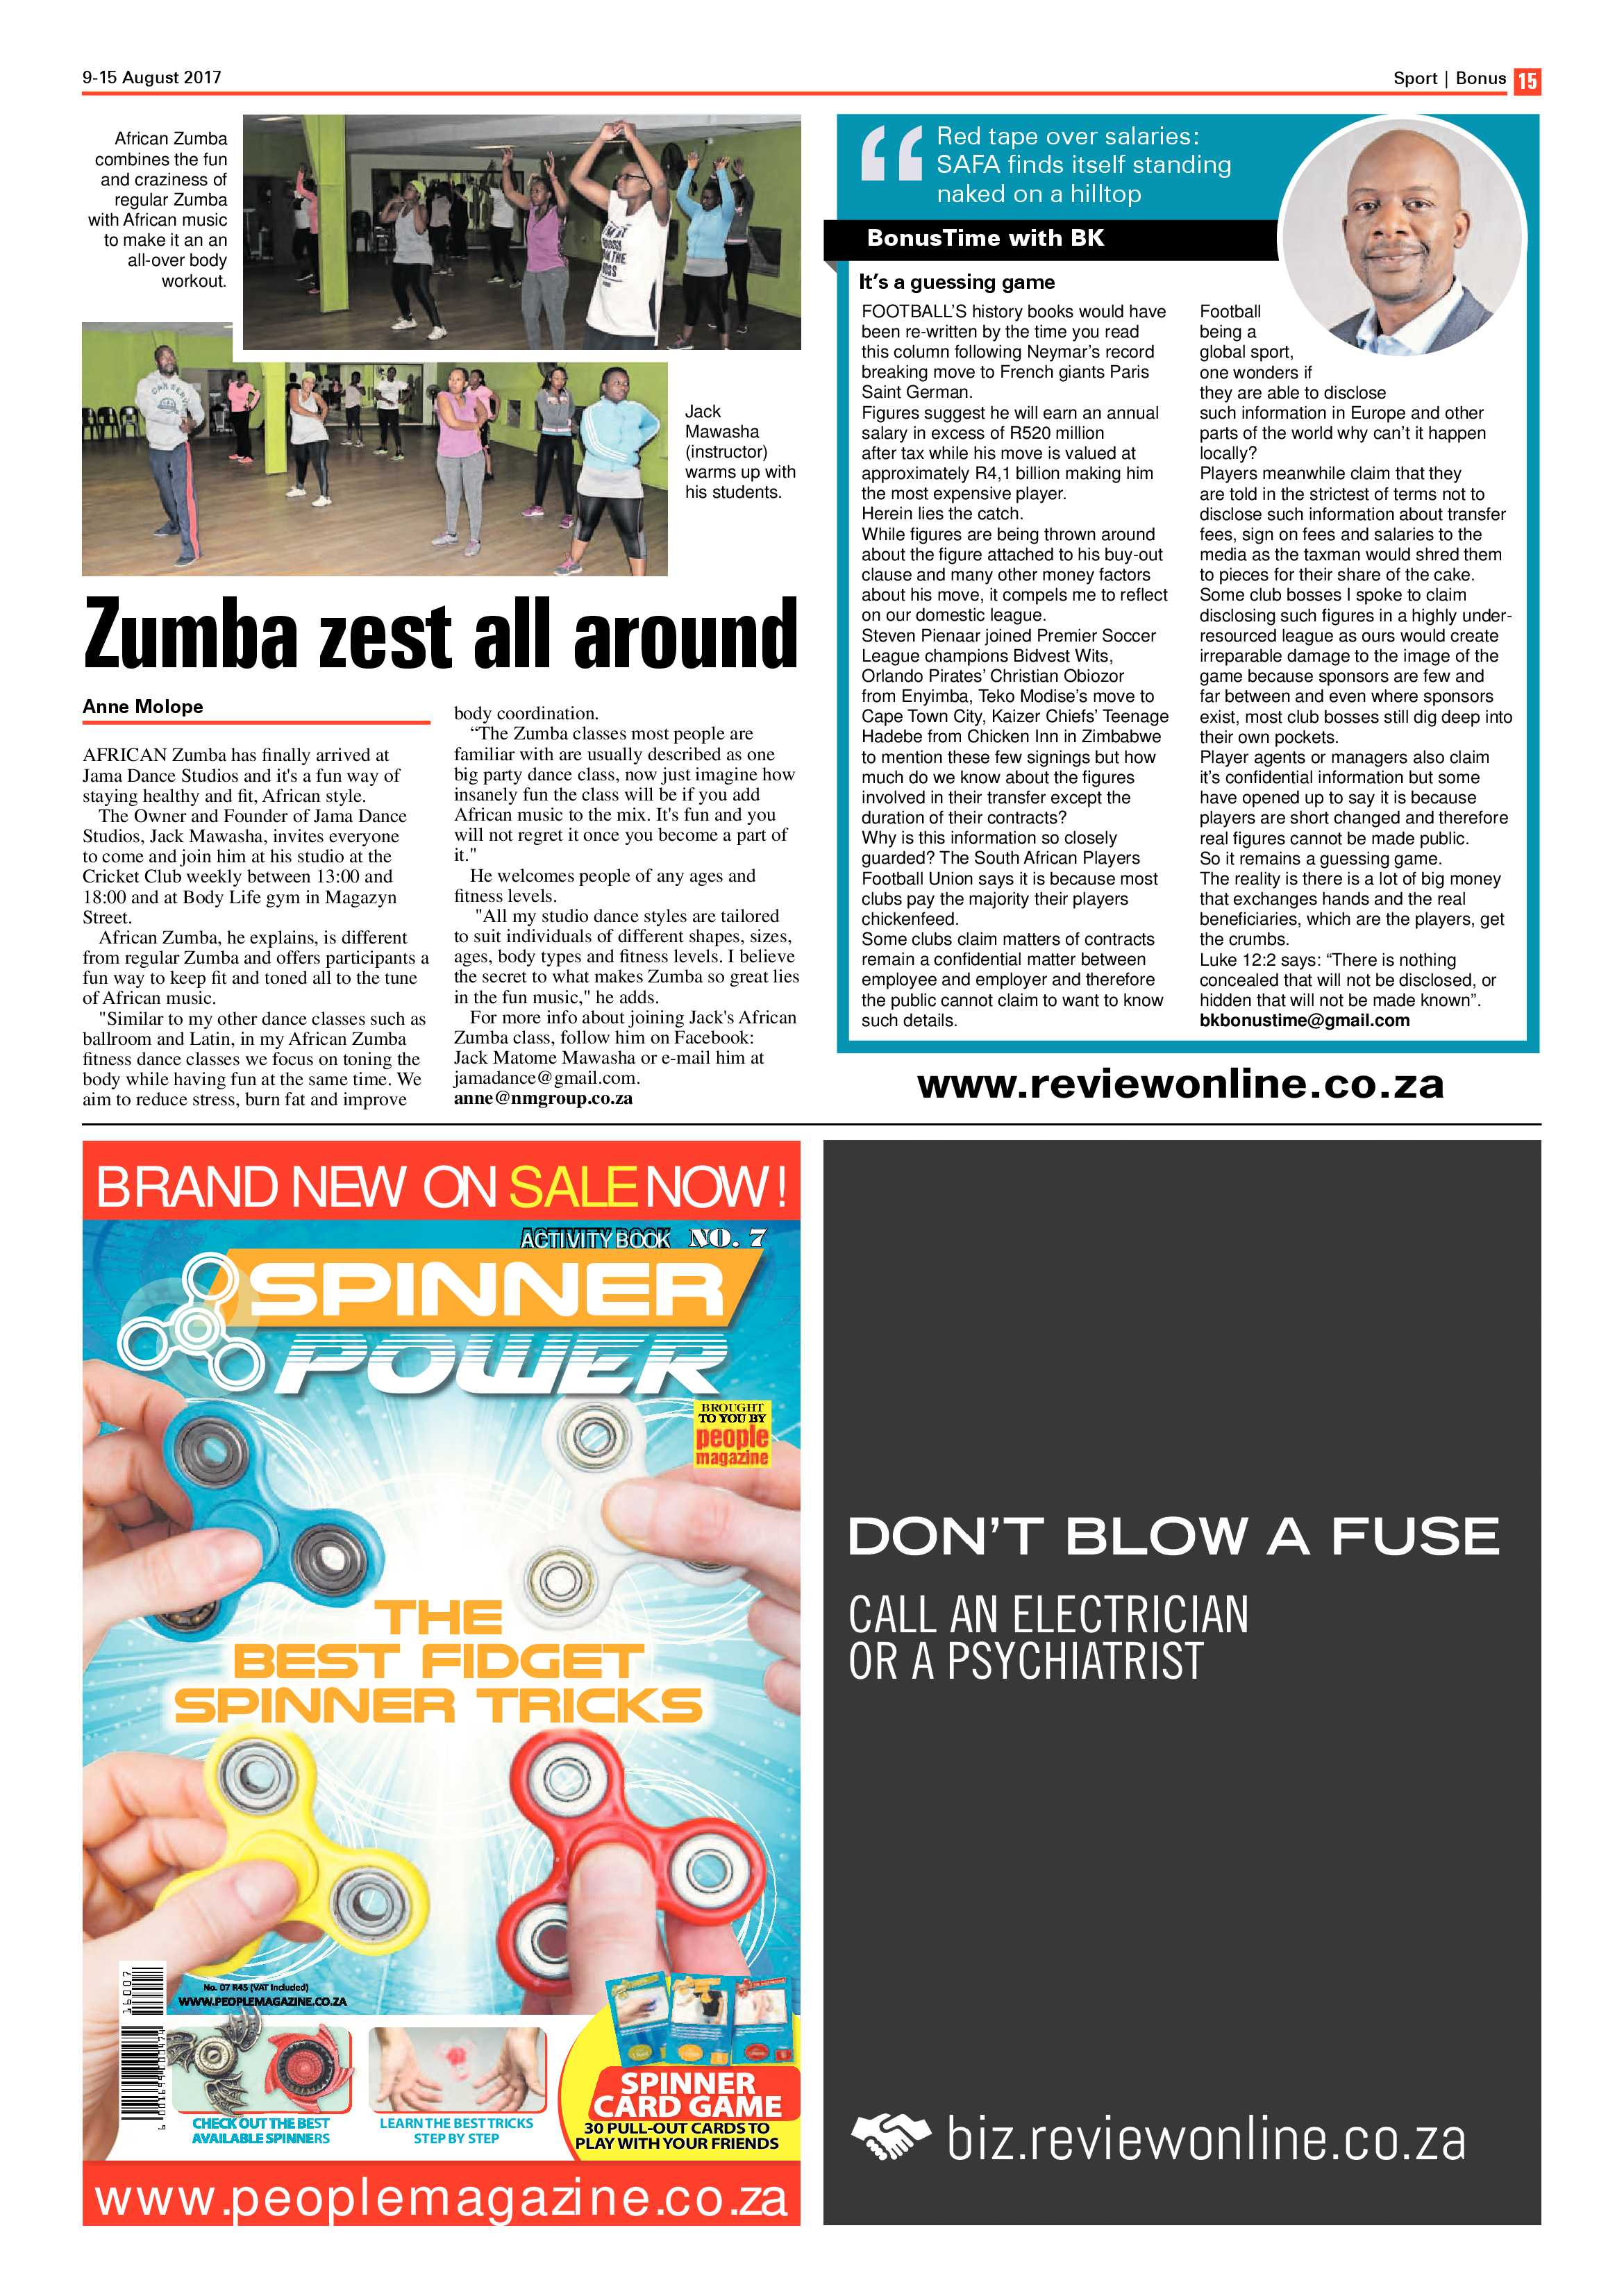 review-bonus-9-august-2017-epapers-page-15